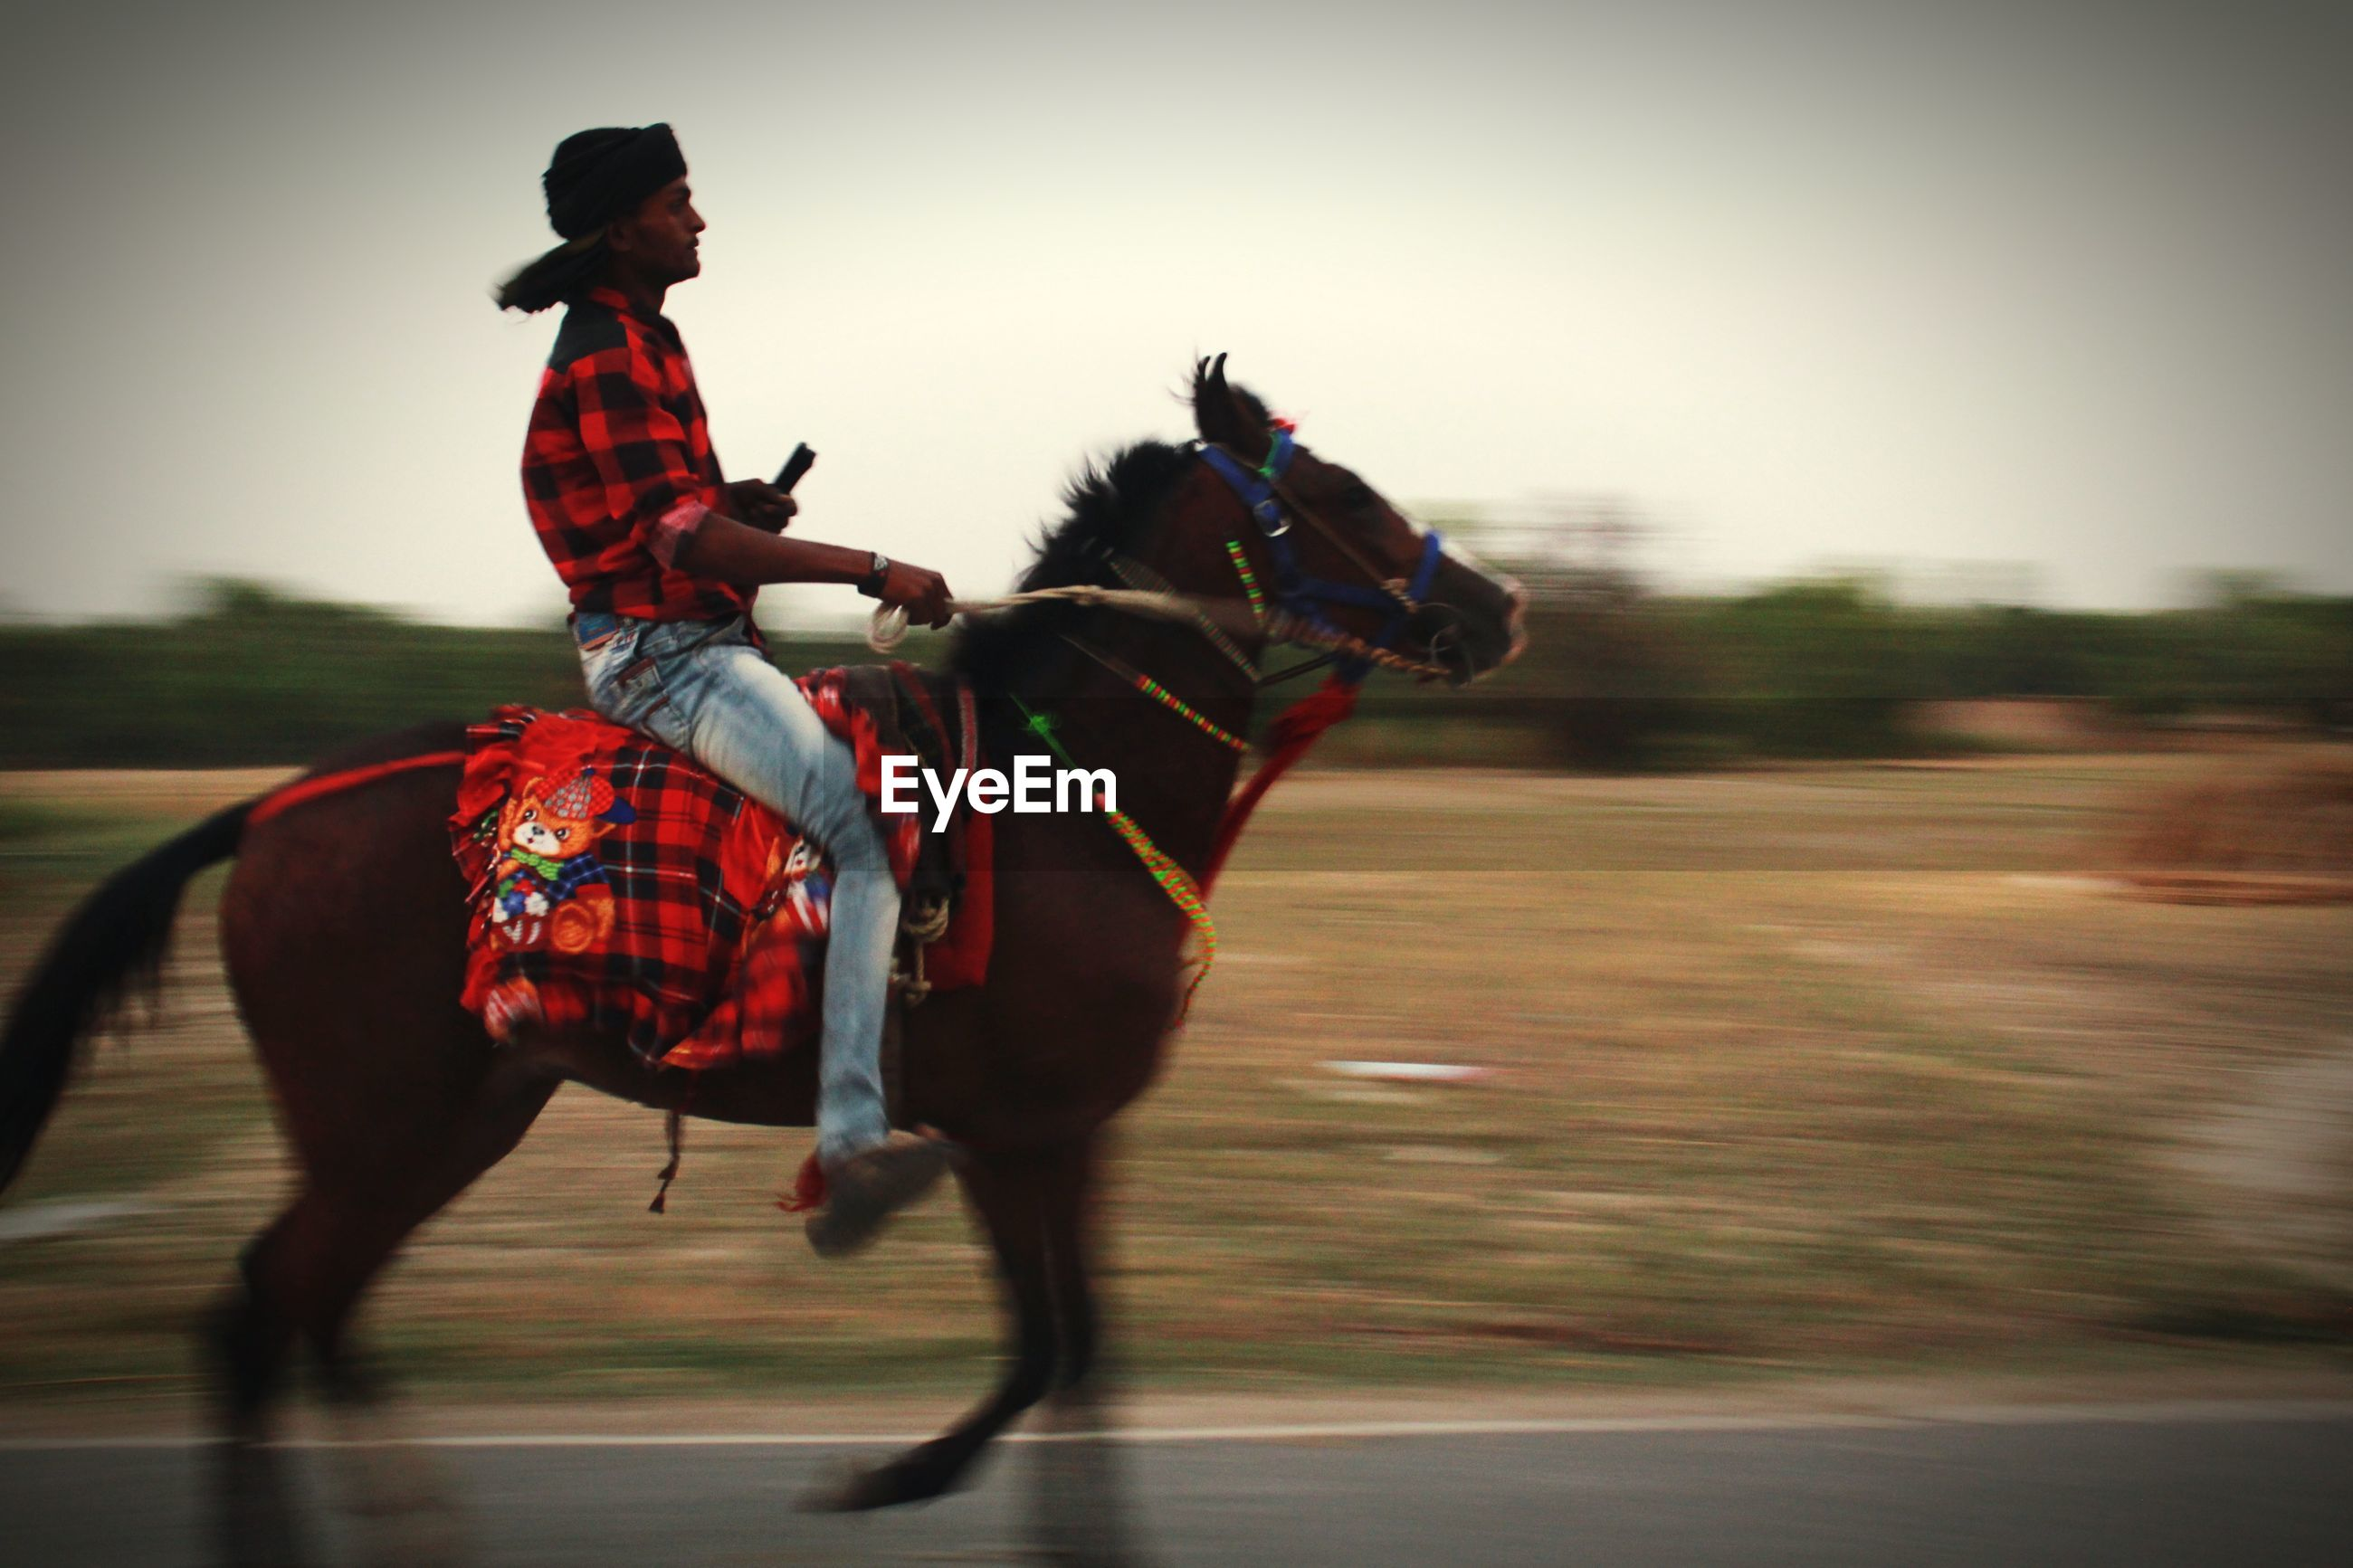 Blurred motion of man riding horse on road